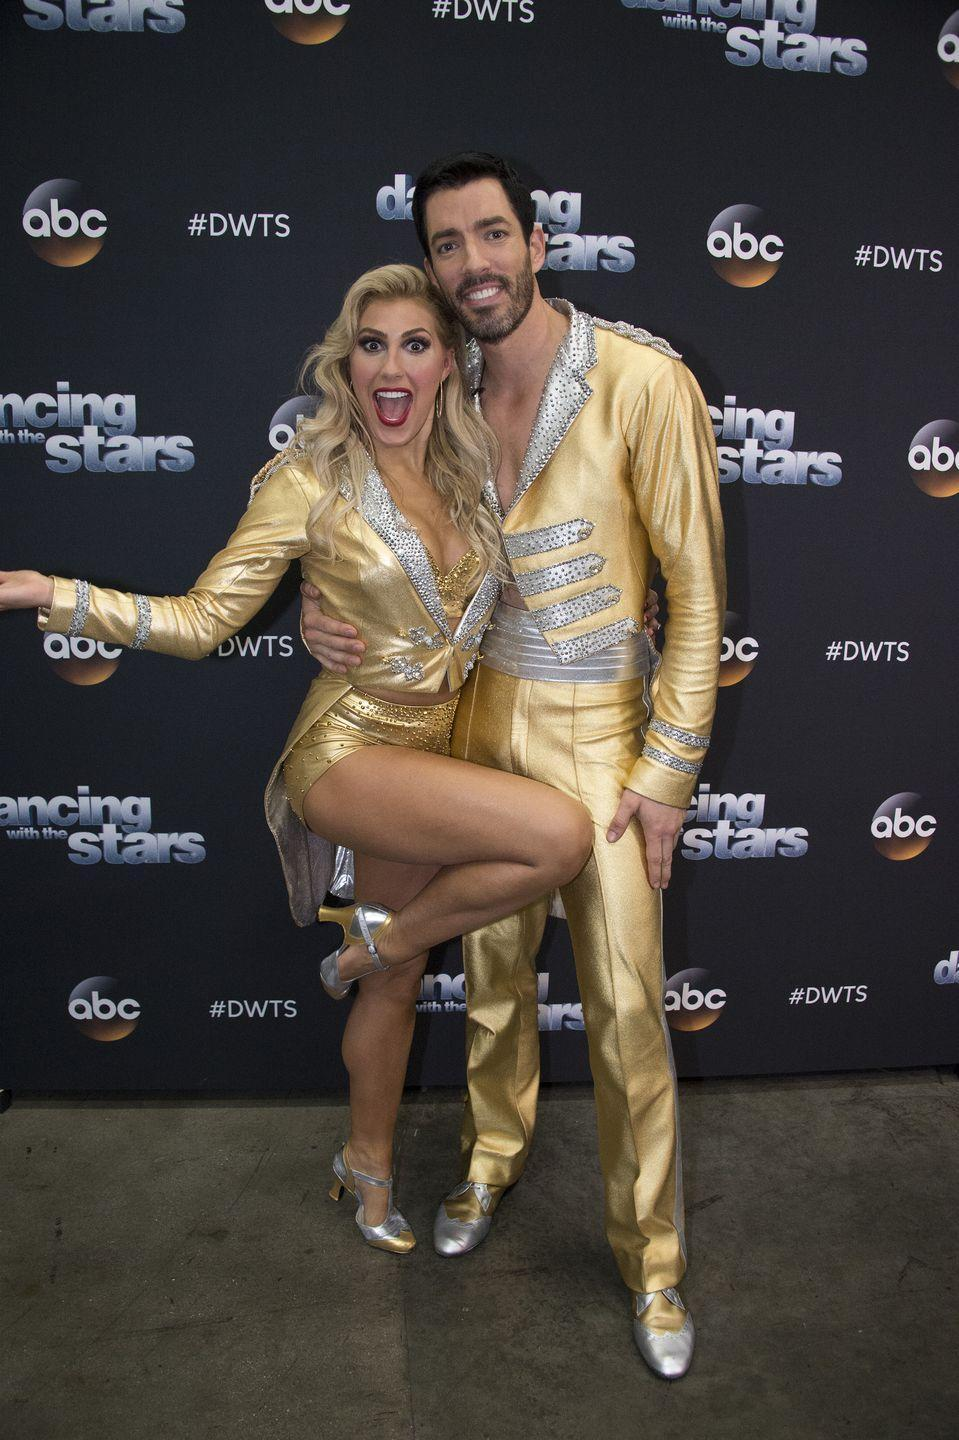 "<p>During a camera blocking rehearsal in season 25, the <em>Property Brothers</em> star injured his hamstring, which almost kept him from dancing. ""I can't do a full lunge, but luckily tonight I didn't have to do that,"" he told <em><a href=""https://people.com/tv/dwts-property-brothers-drew-scott-injury-spray-tan-mishap-interview/"" rel=""nofollow noopener"" target=""_blank"" data-ylk=""slk:People"" class=""link rapid-noclick-resp"">People</a></em>. ""The quickstep was staying tall and staying on my toes. But for the rumba tomorrow, I'm going to be working on my hamstring all tonight and tomorrow. I don't want it to slow me down.""</p><p>Drew was able to perform his quickstep and the rumba, and continued with the competition the following week. He dropped more than 30 pounds along the way, too.</p>"